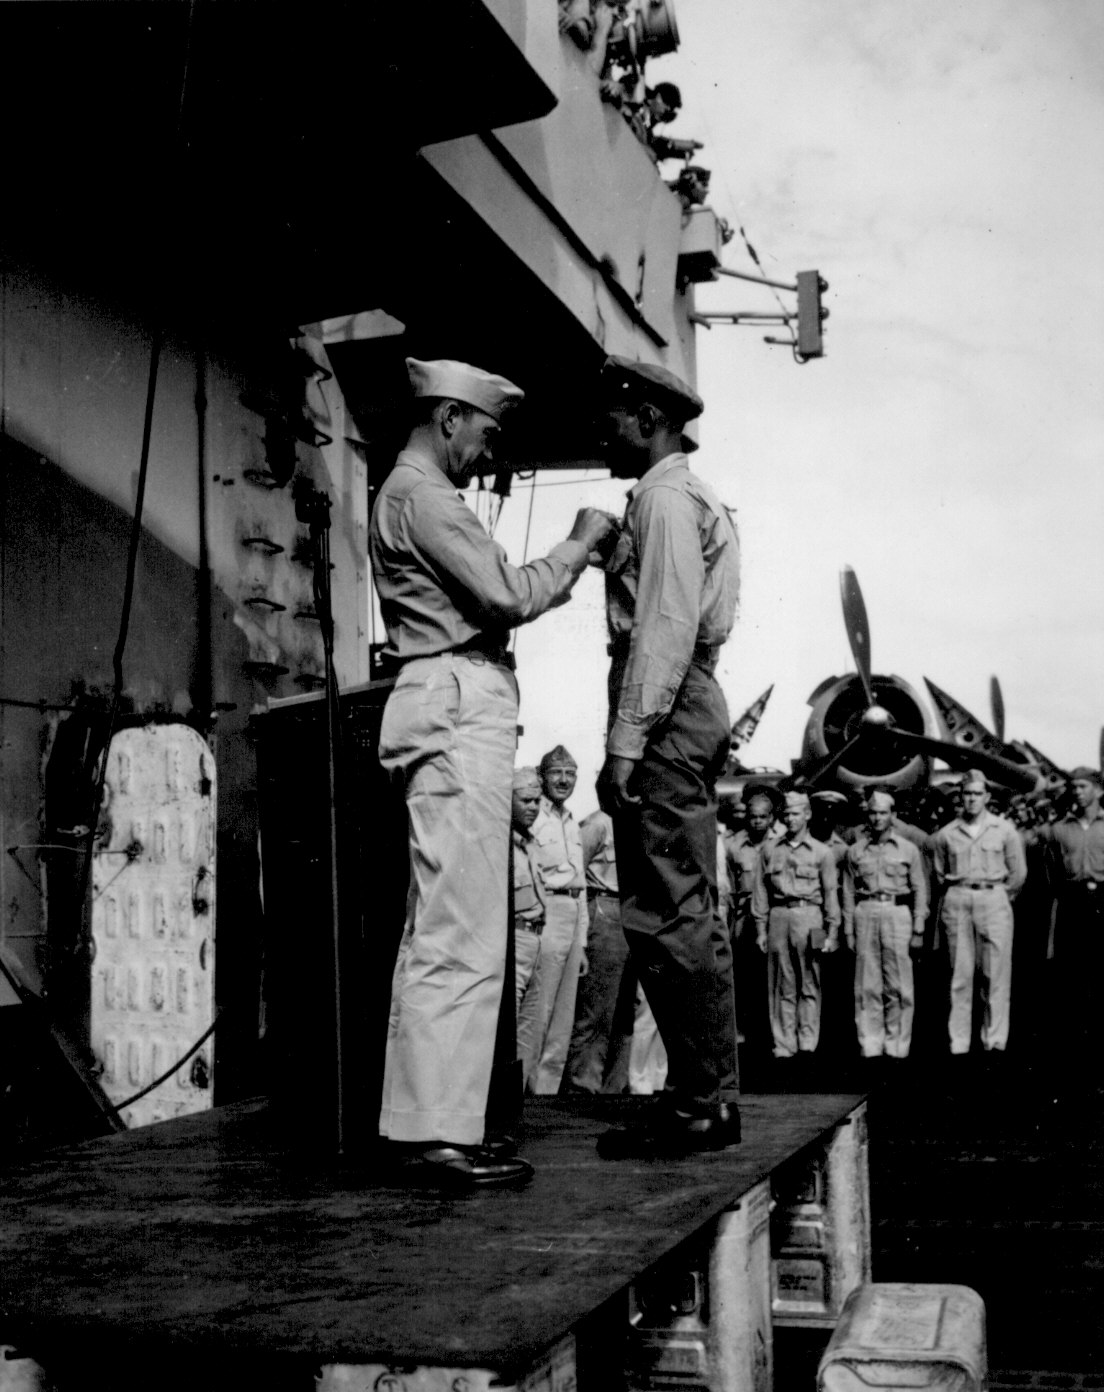 role of african americans in wwii essay As most americans know, the united states entered world war ii after the attack on pearl harbor on dec 7, 1941 the war had actually started in europe in september of 1939, but it took this event to draw our country into the battle.